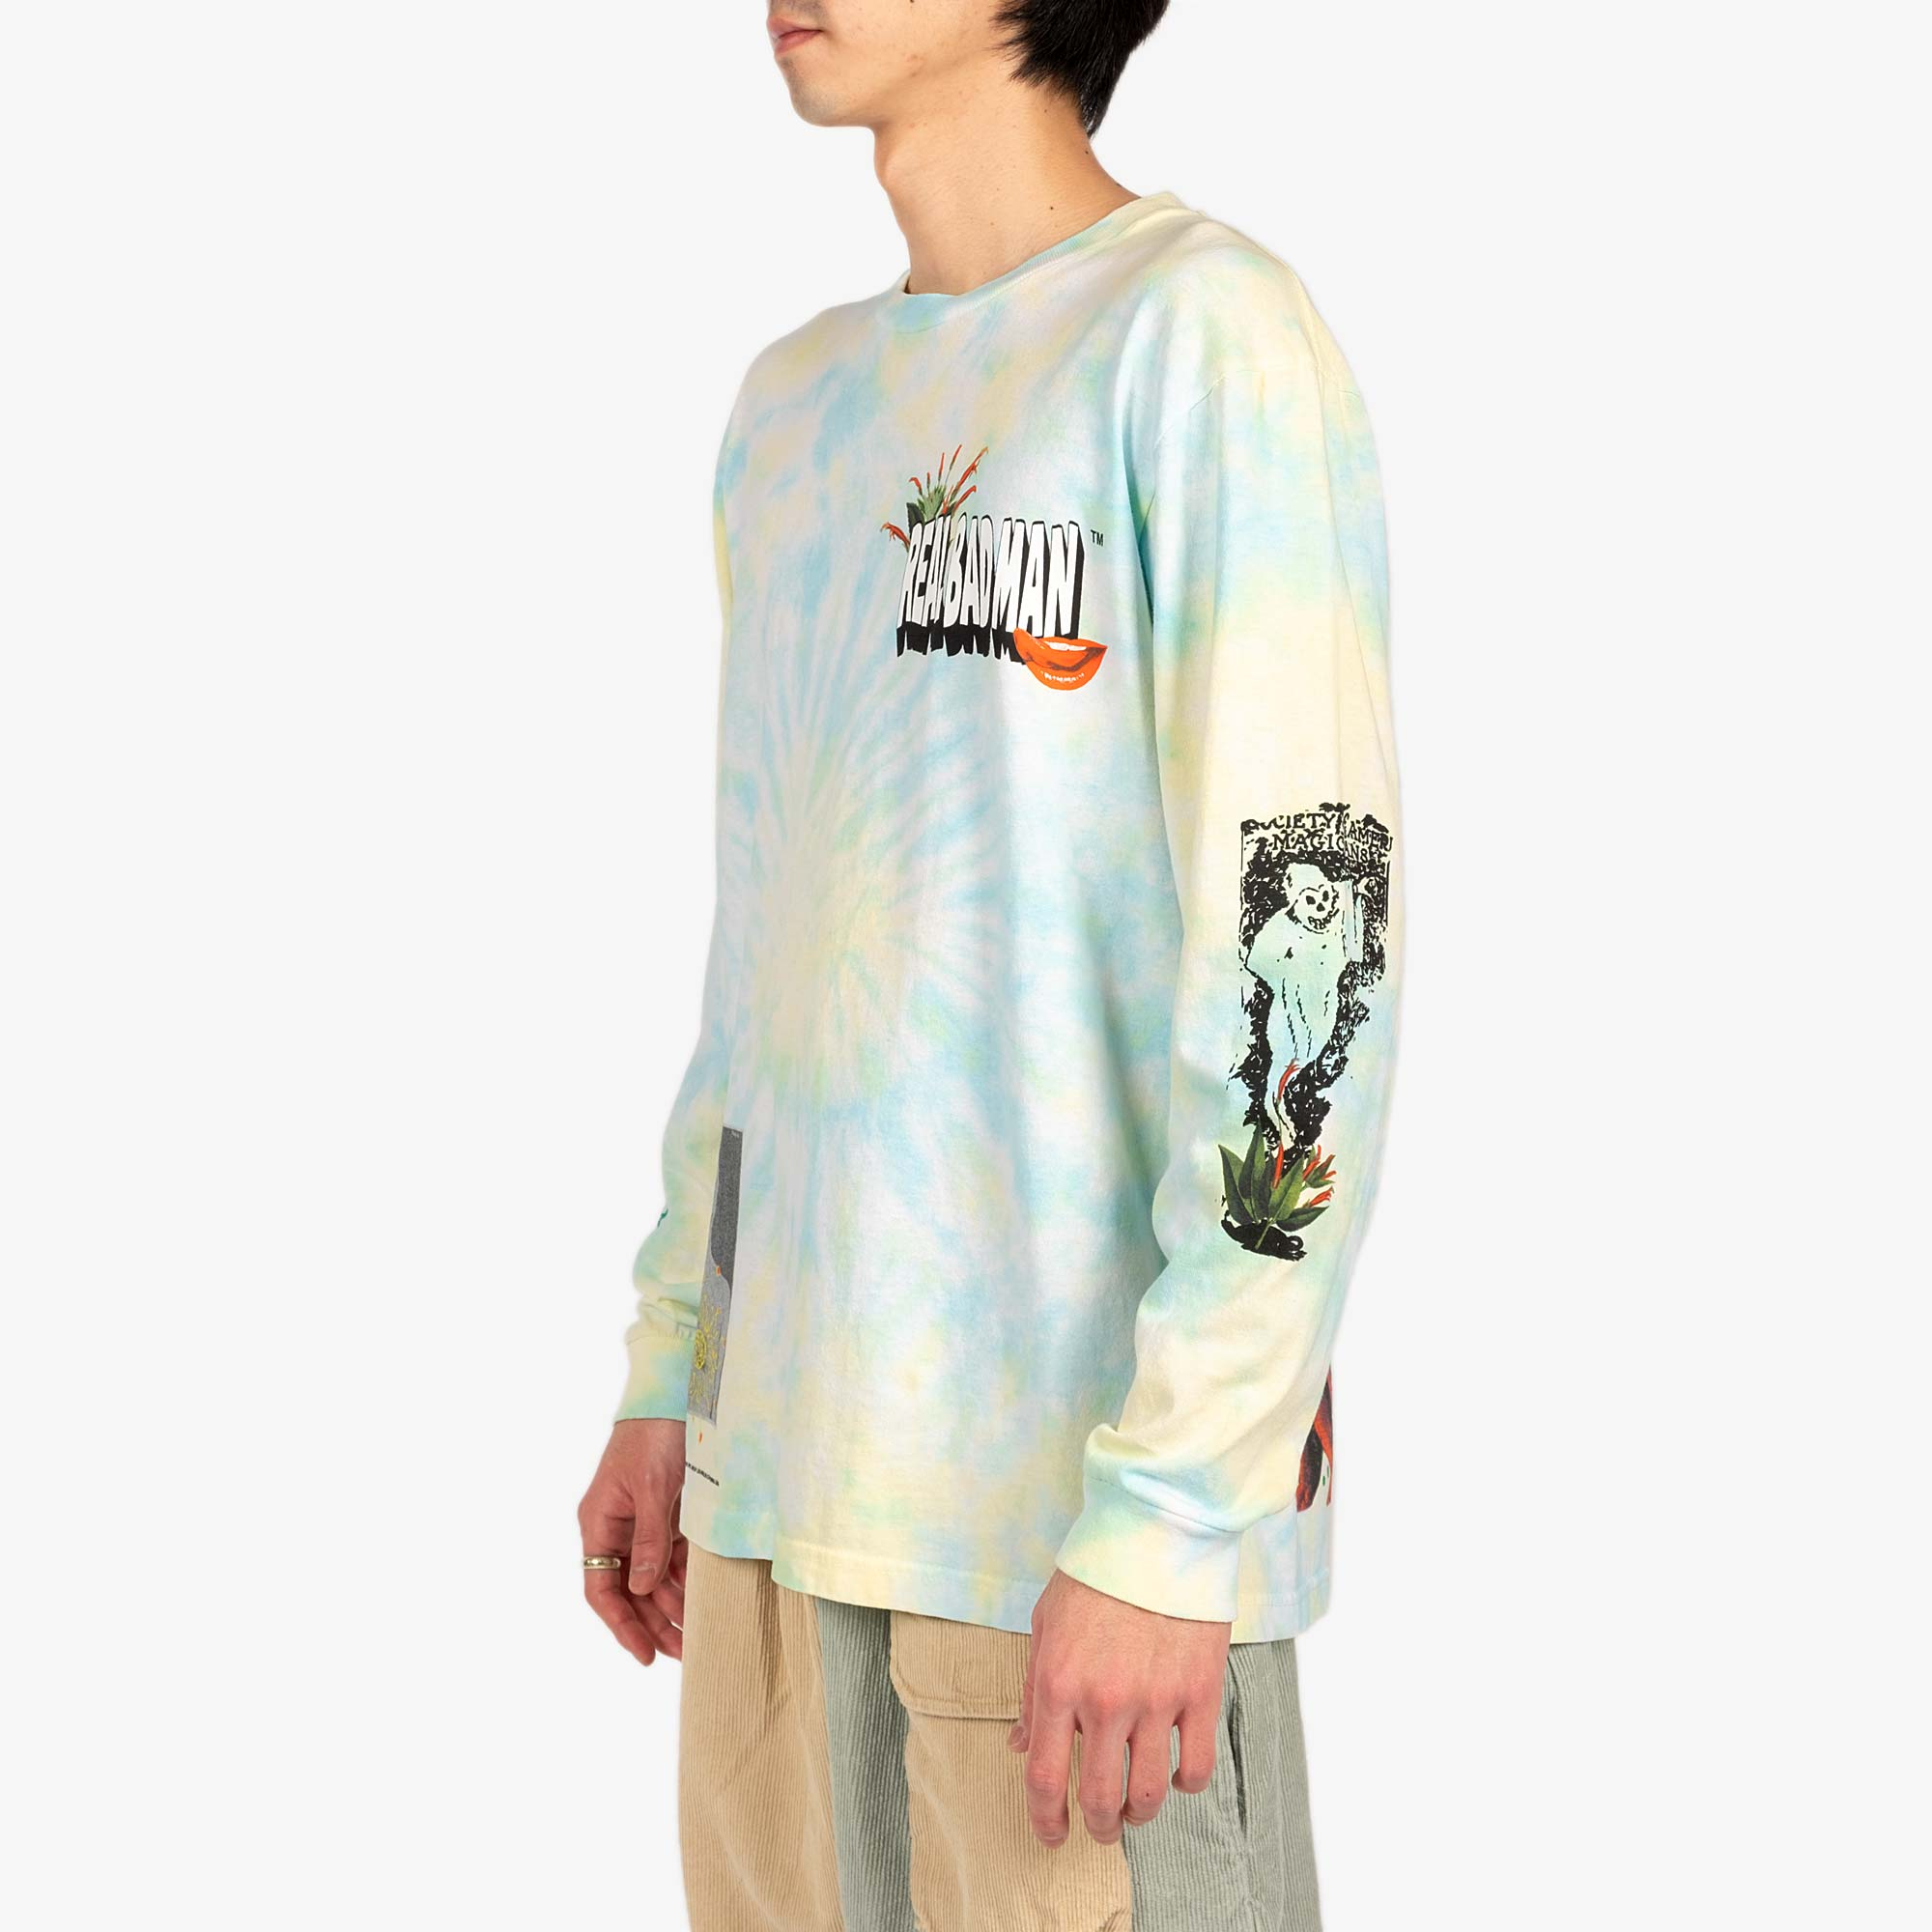 Real Bad Man From Outer Space LS Tee - Aqua / Yellow 6